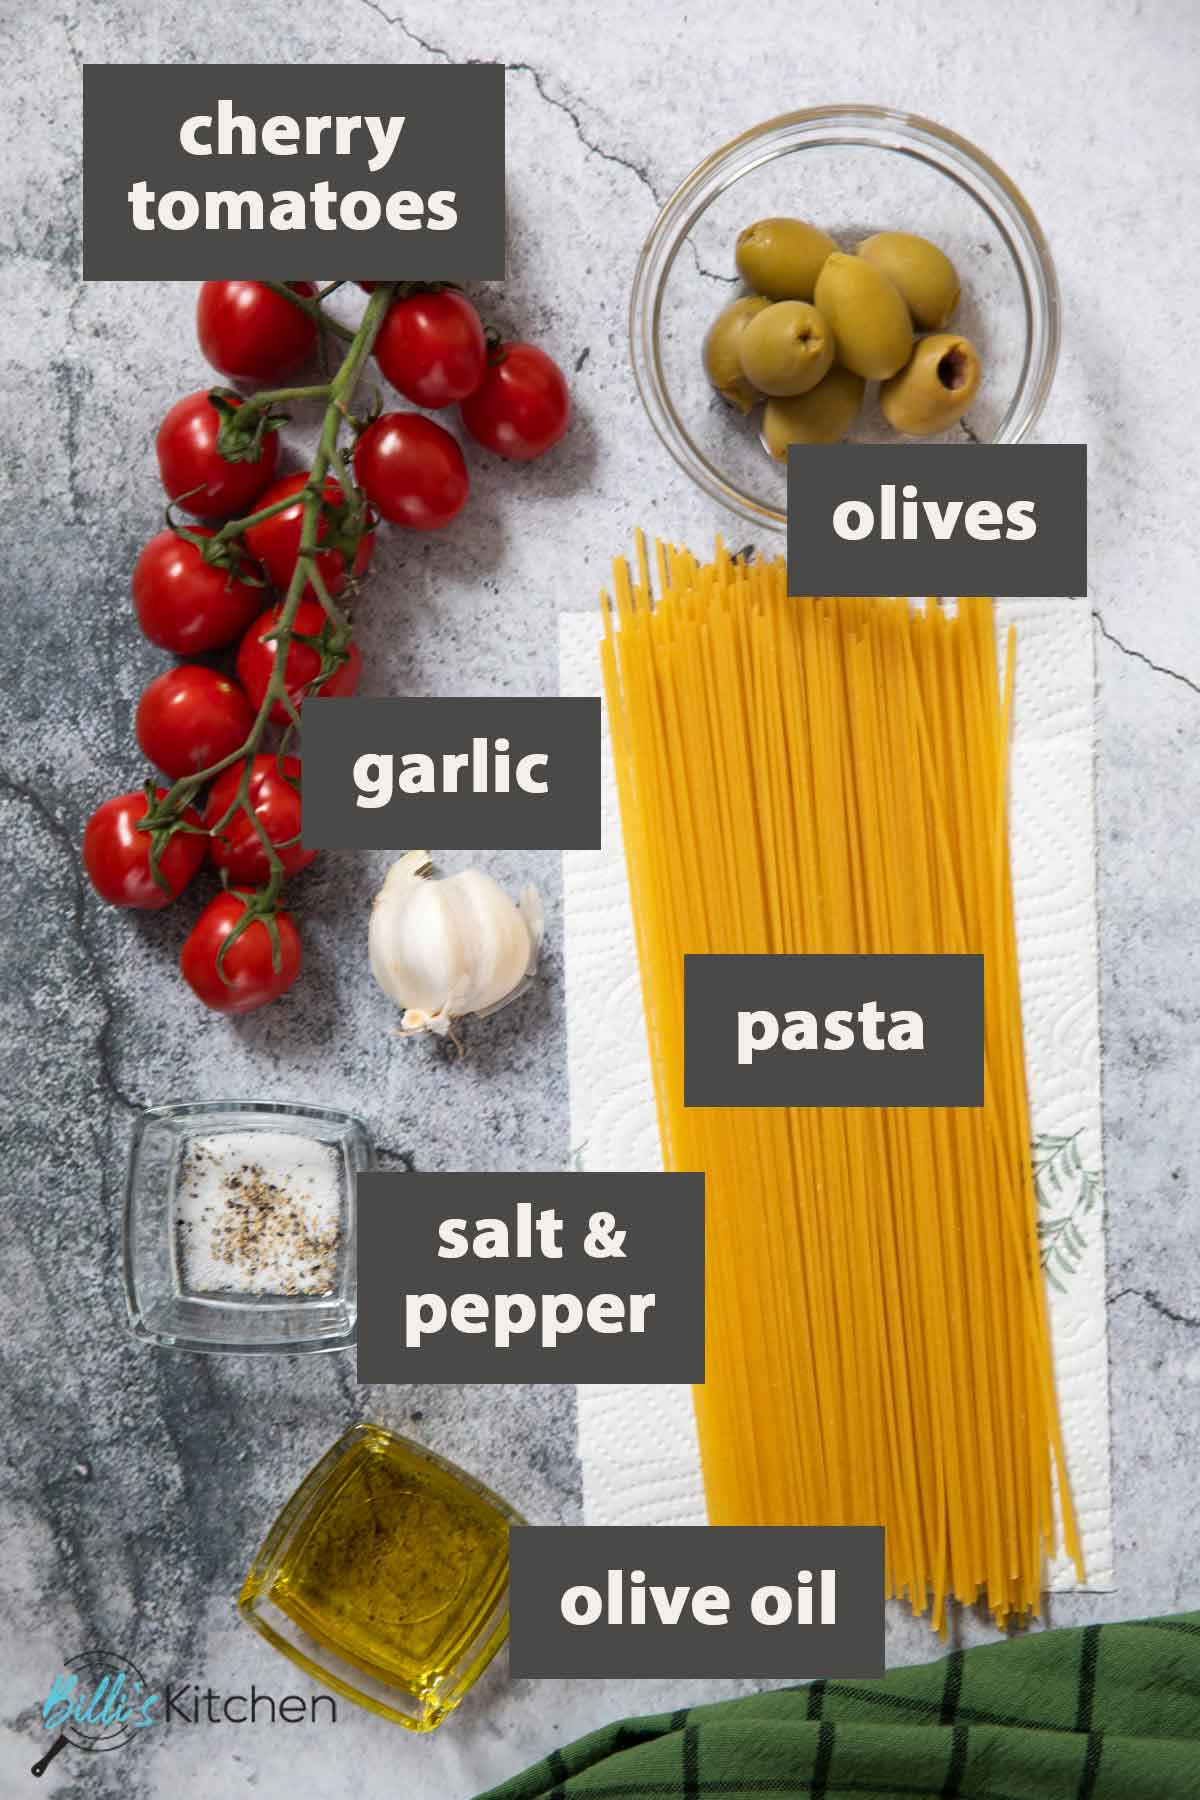 An image showing all the ingredients you need for making 15-Minute Cherry Tomato Pasta.